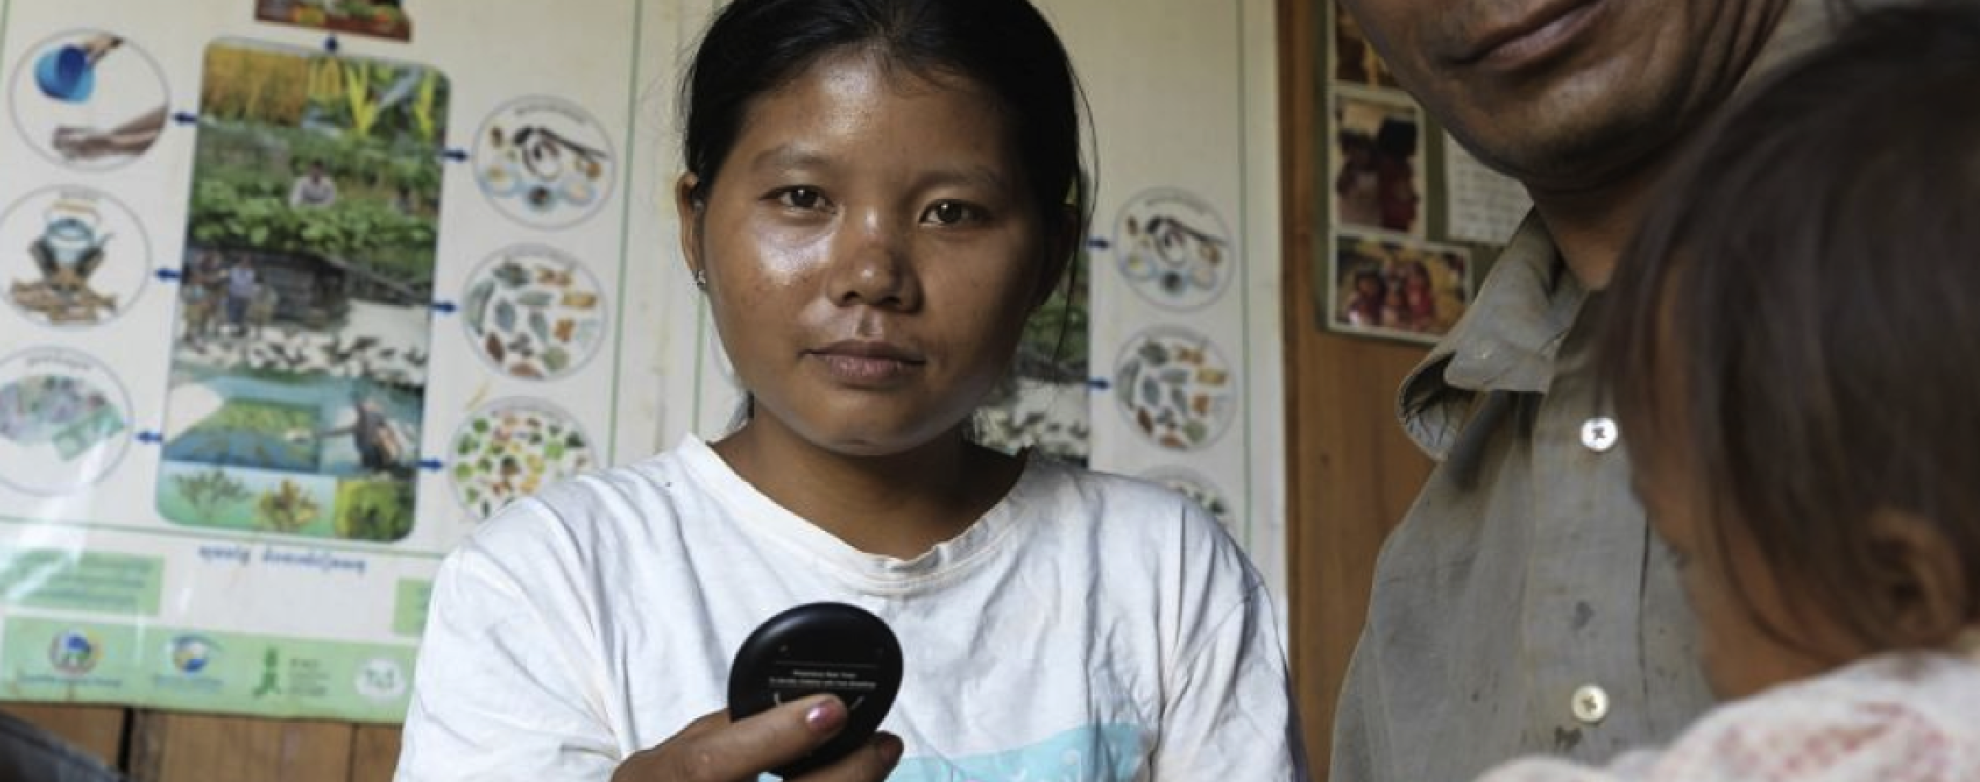 Latest News Pneumonia diagnostics project shares results at dissemination meetings in cambodia